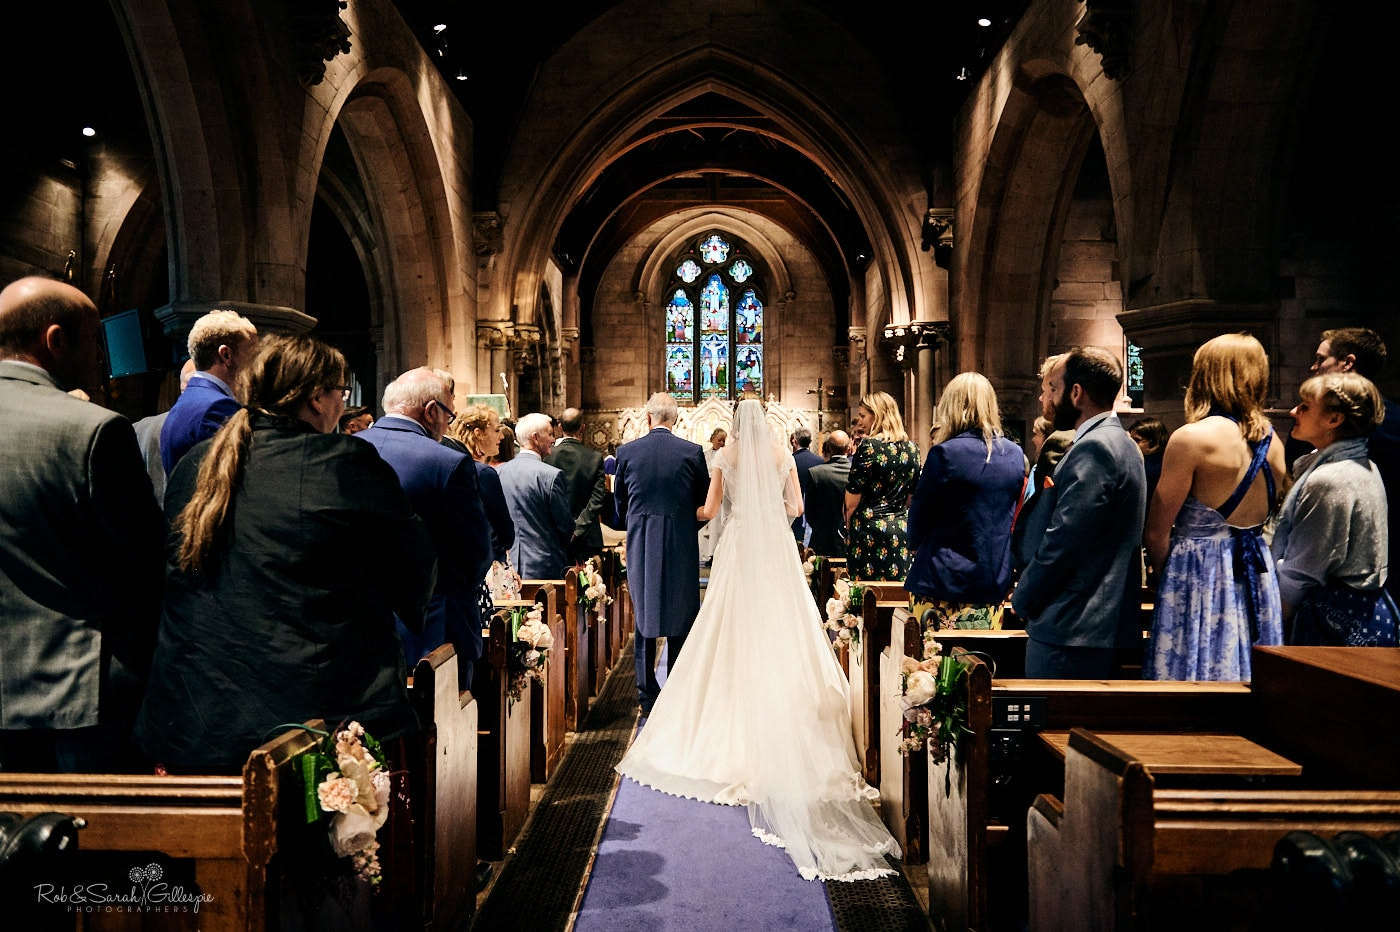 Bride and father walk up aisle at St Peter's church Pedmore